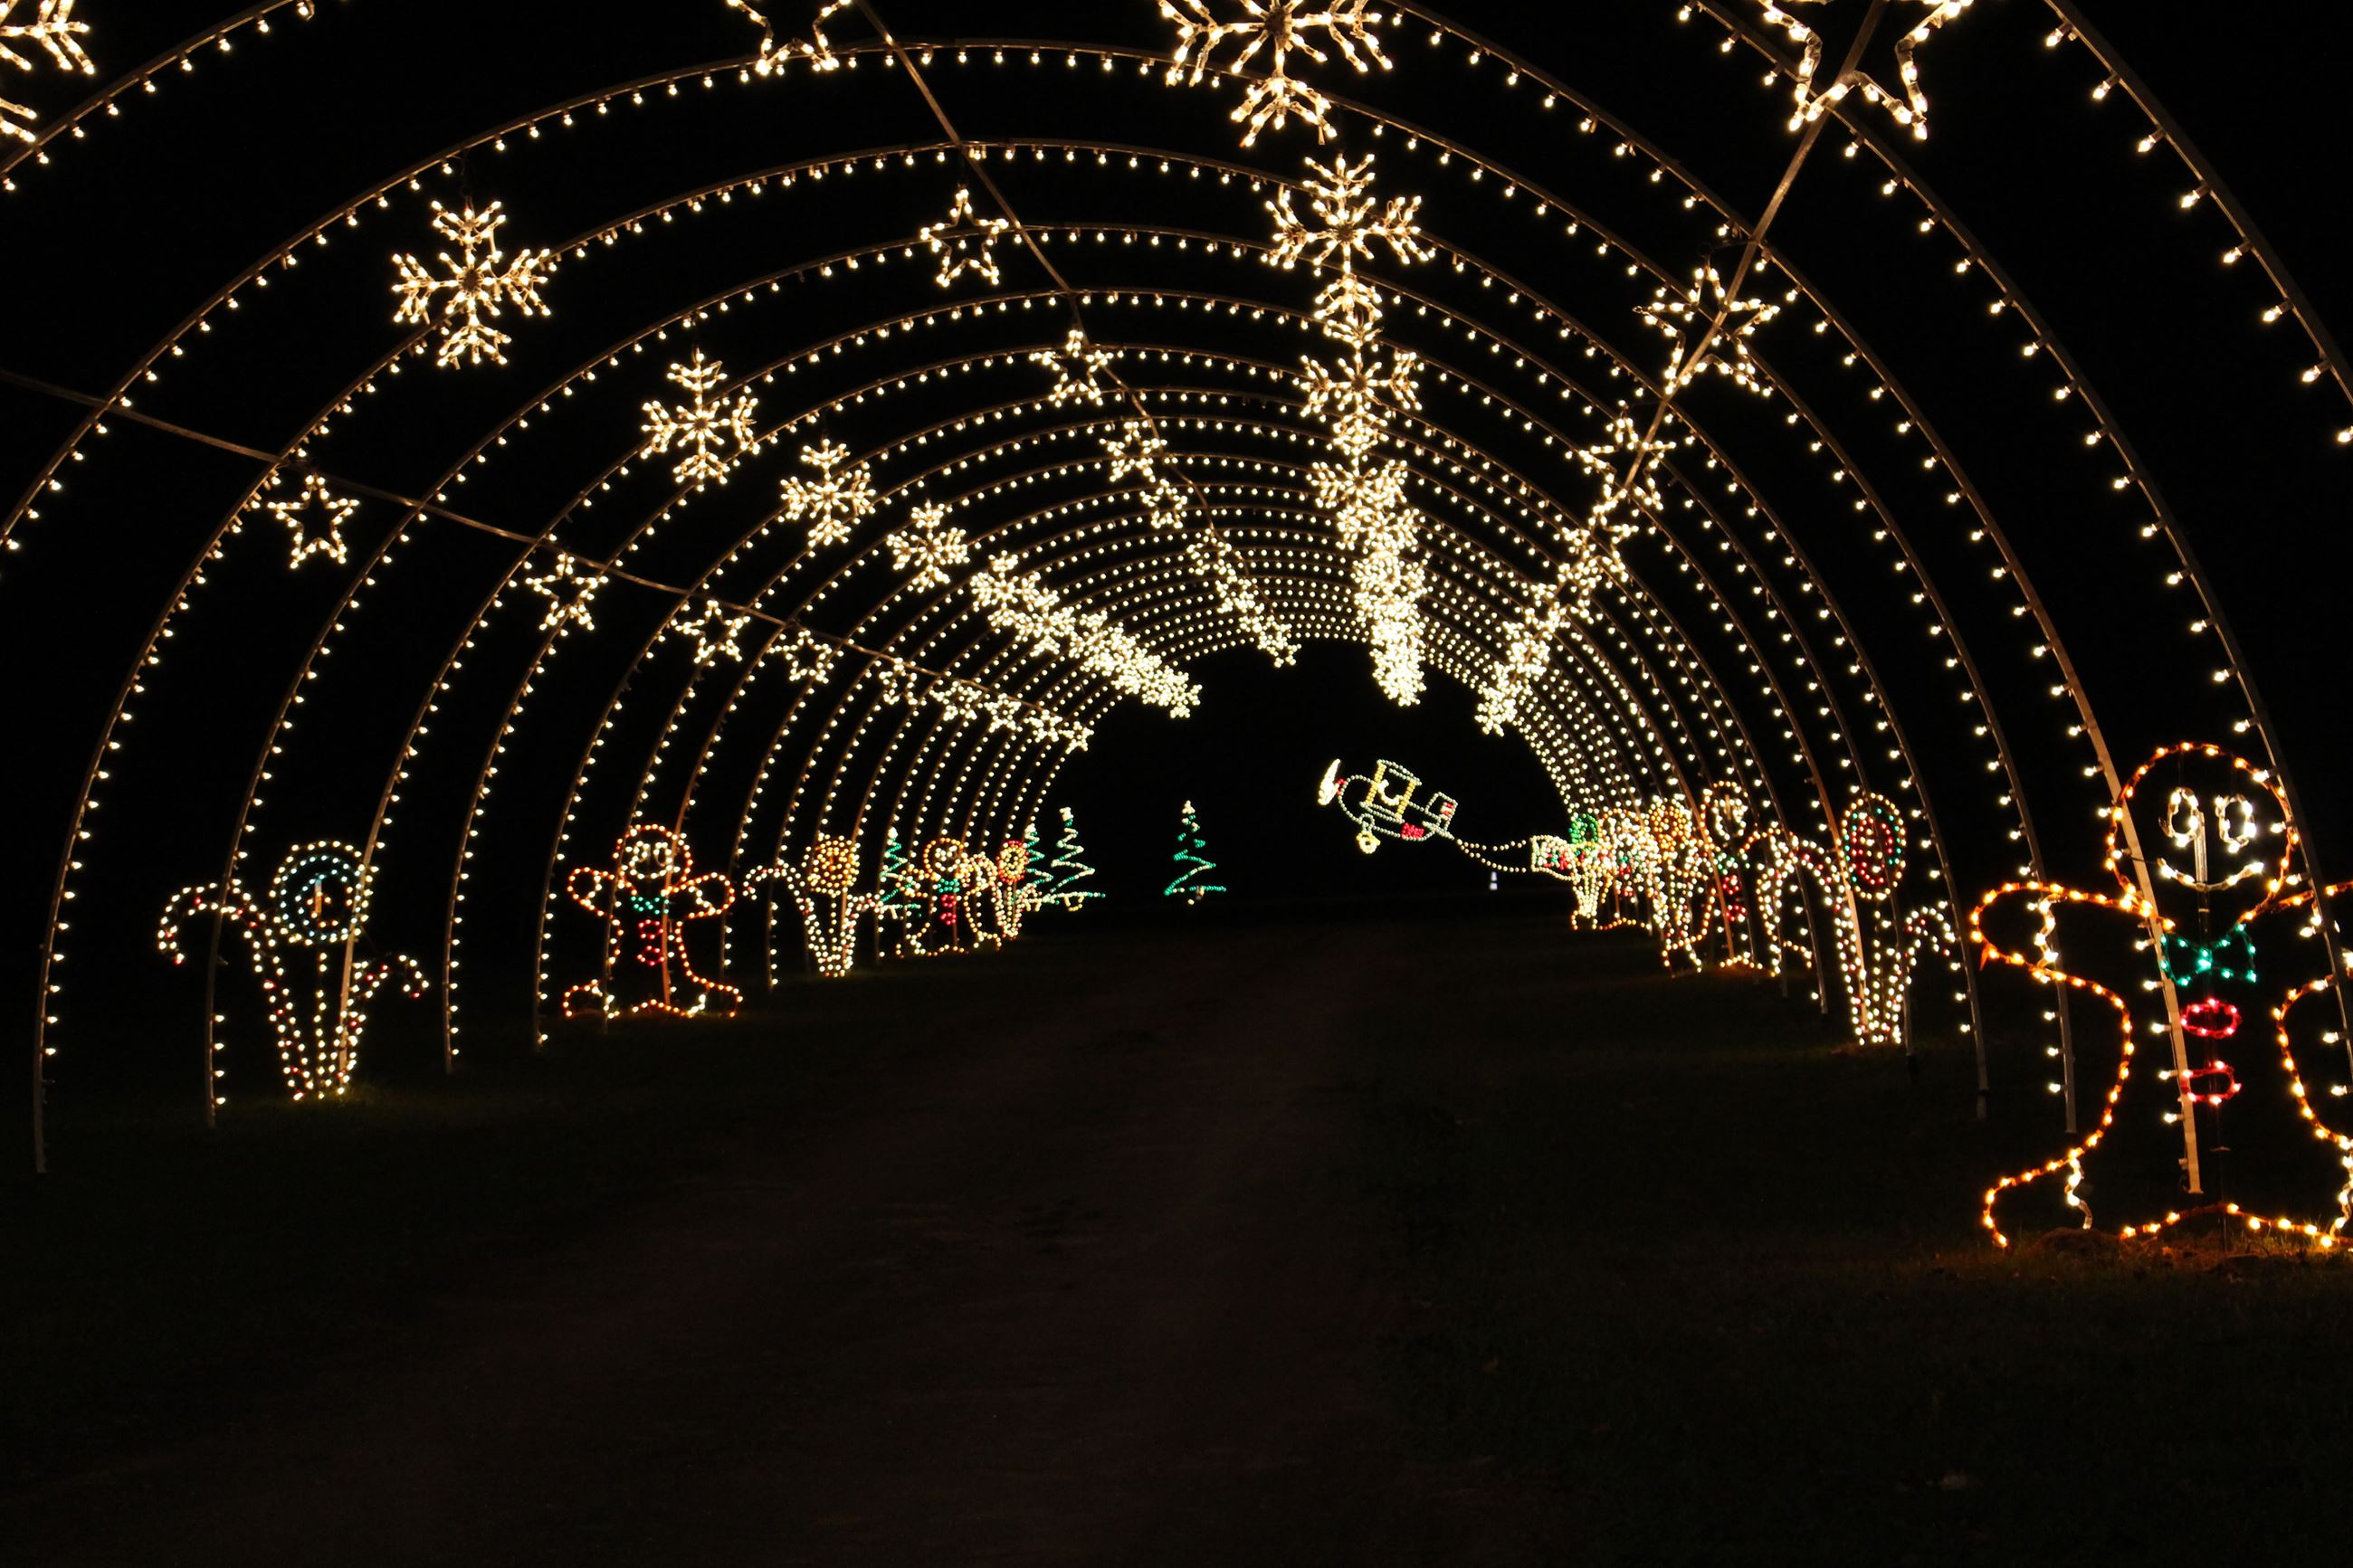 Christmas In The Park Tunnel of Lights